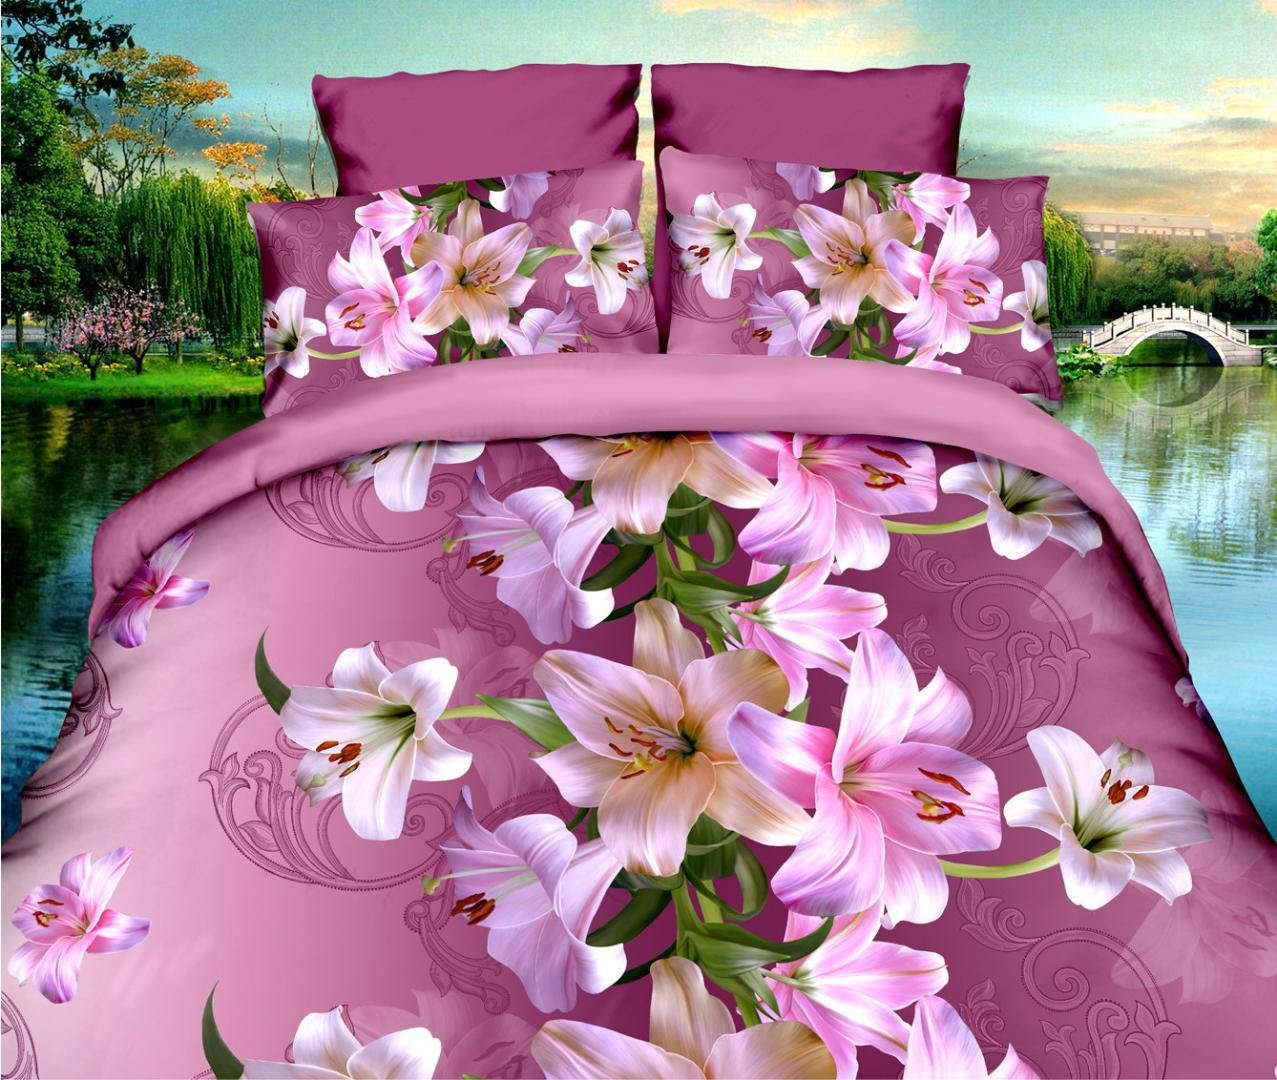 Bedding Set 3D Red Rose Lavender Lily Peony pastoral style 4pcs family children's room Duvet Cover Sets Bed Sheet Set Pillowcase